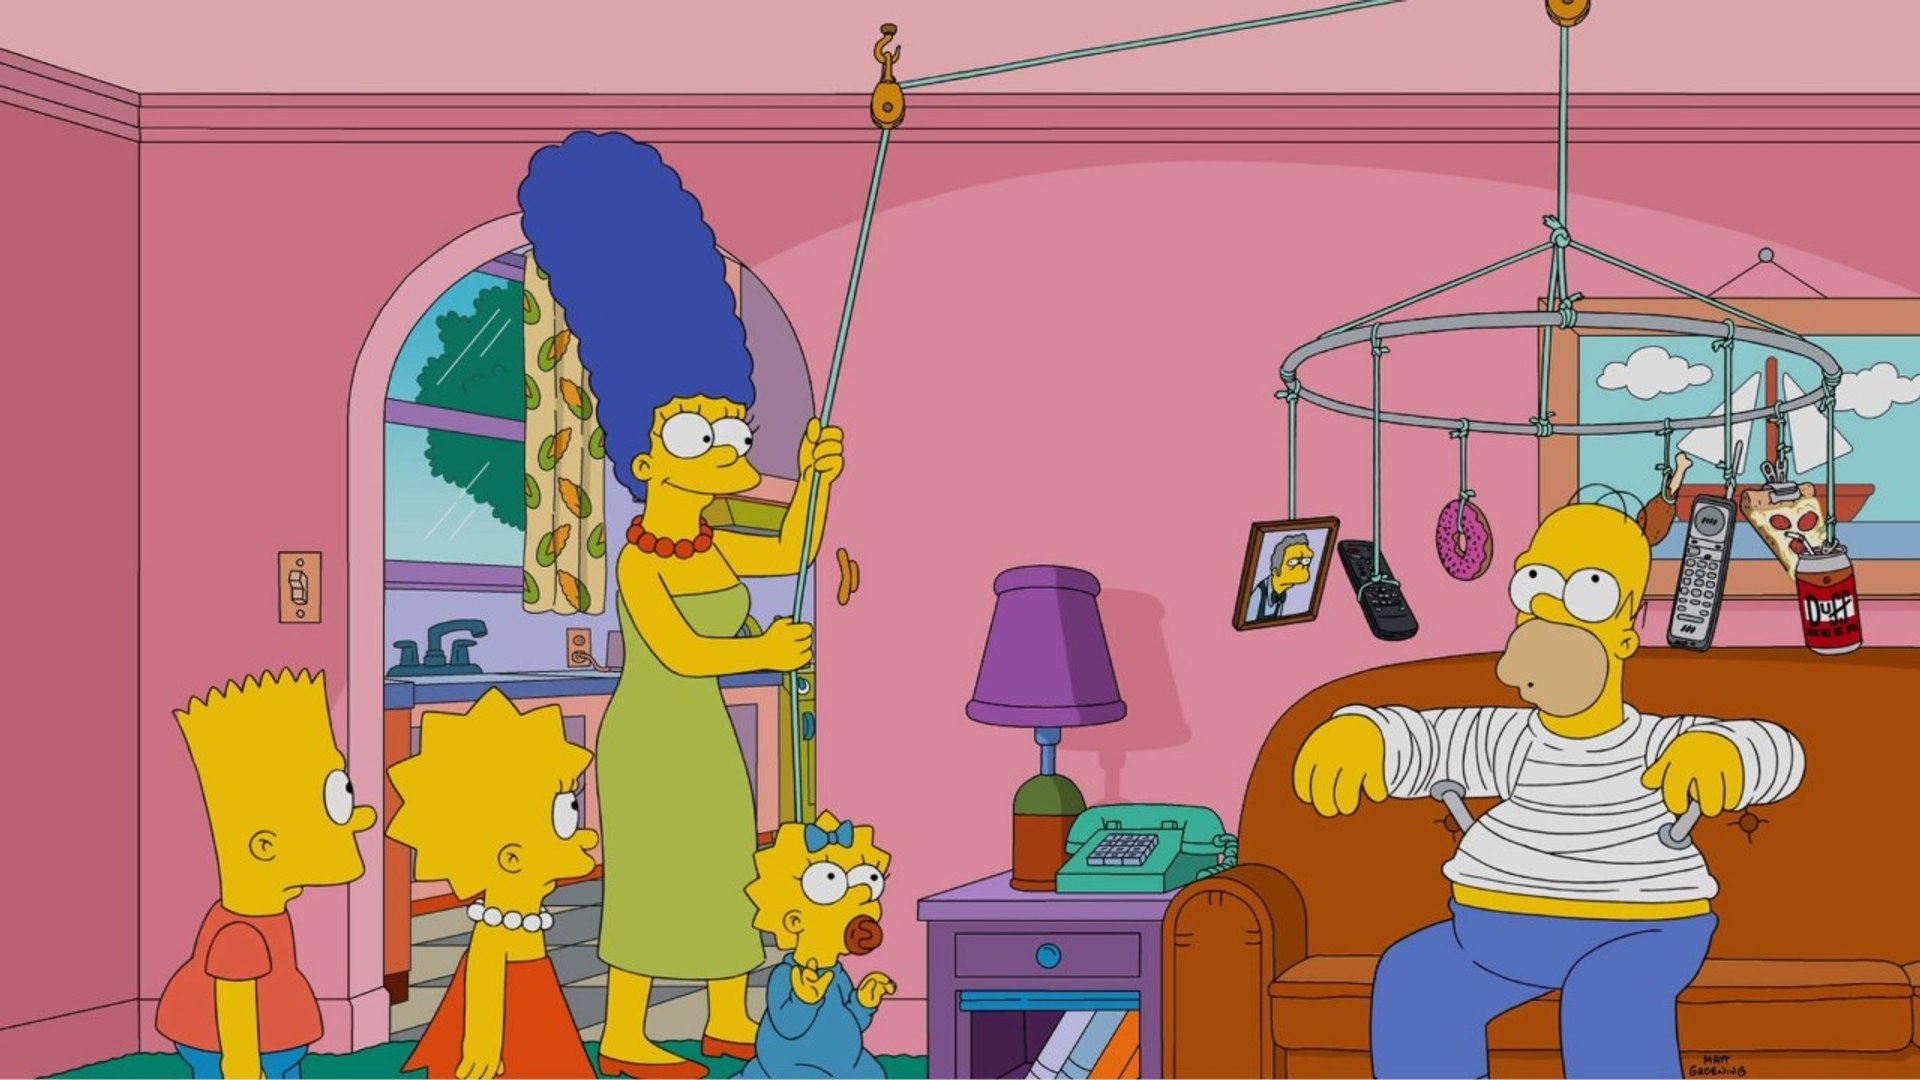 'The Simpsons' Predicted Disney Would Buy 20th Century Fox